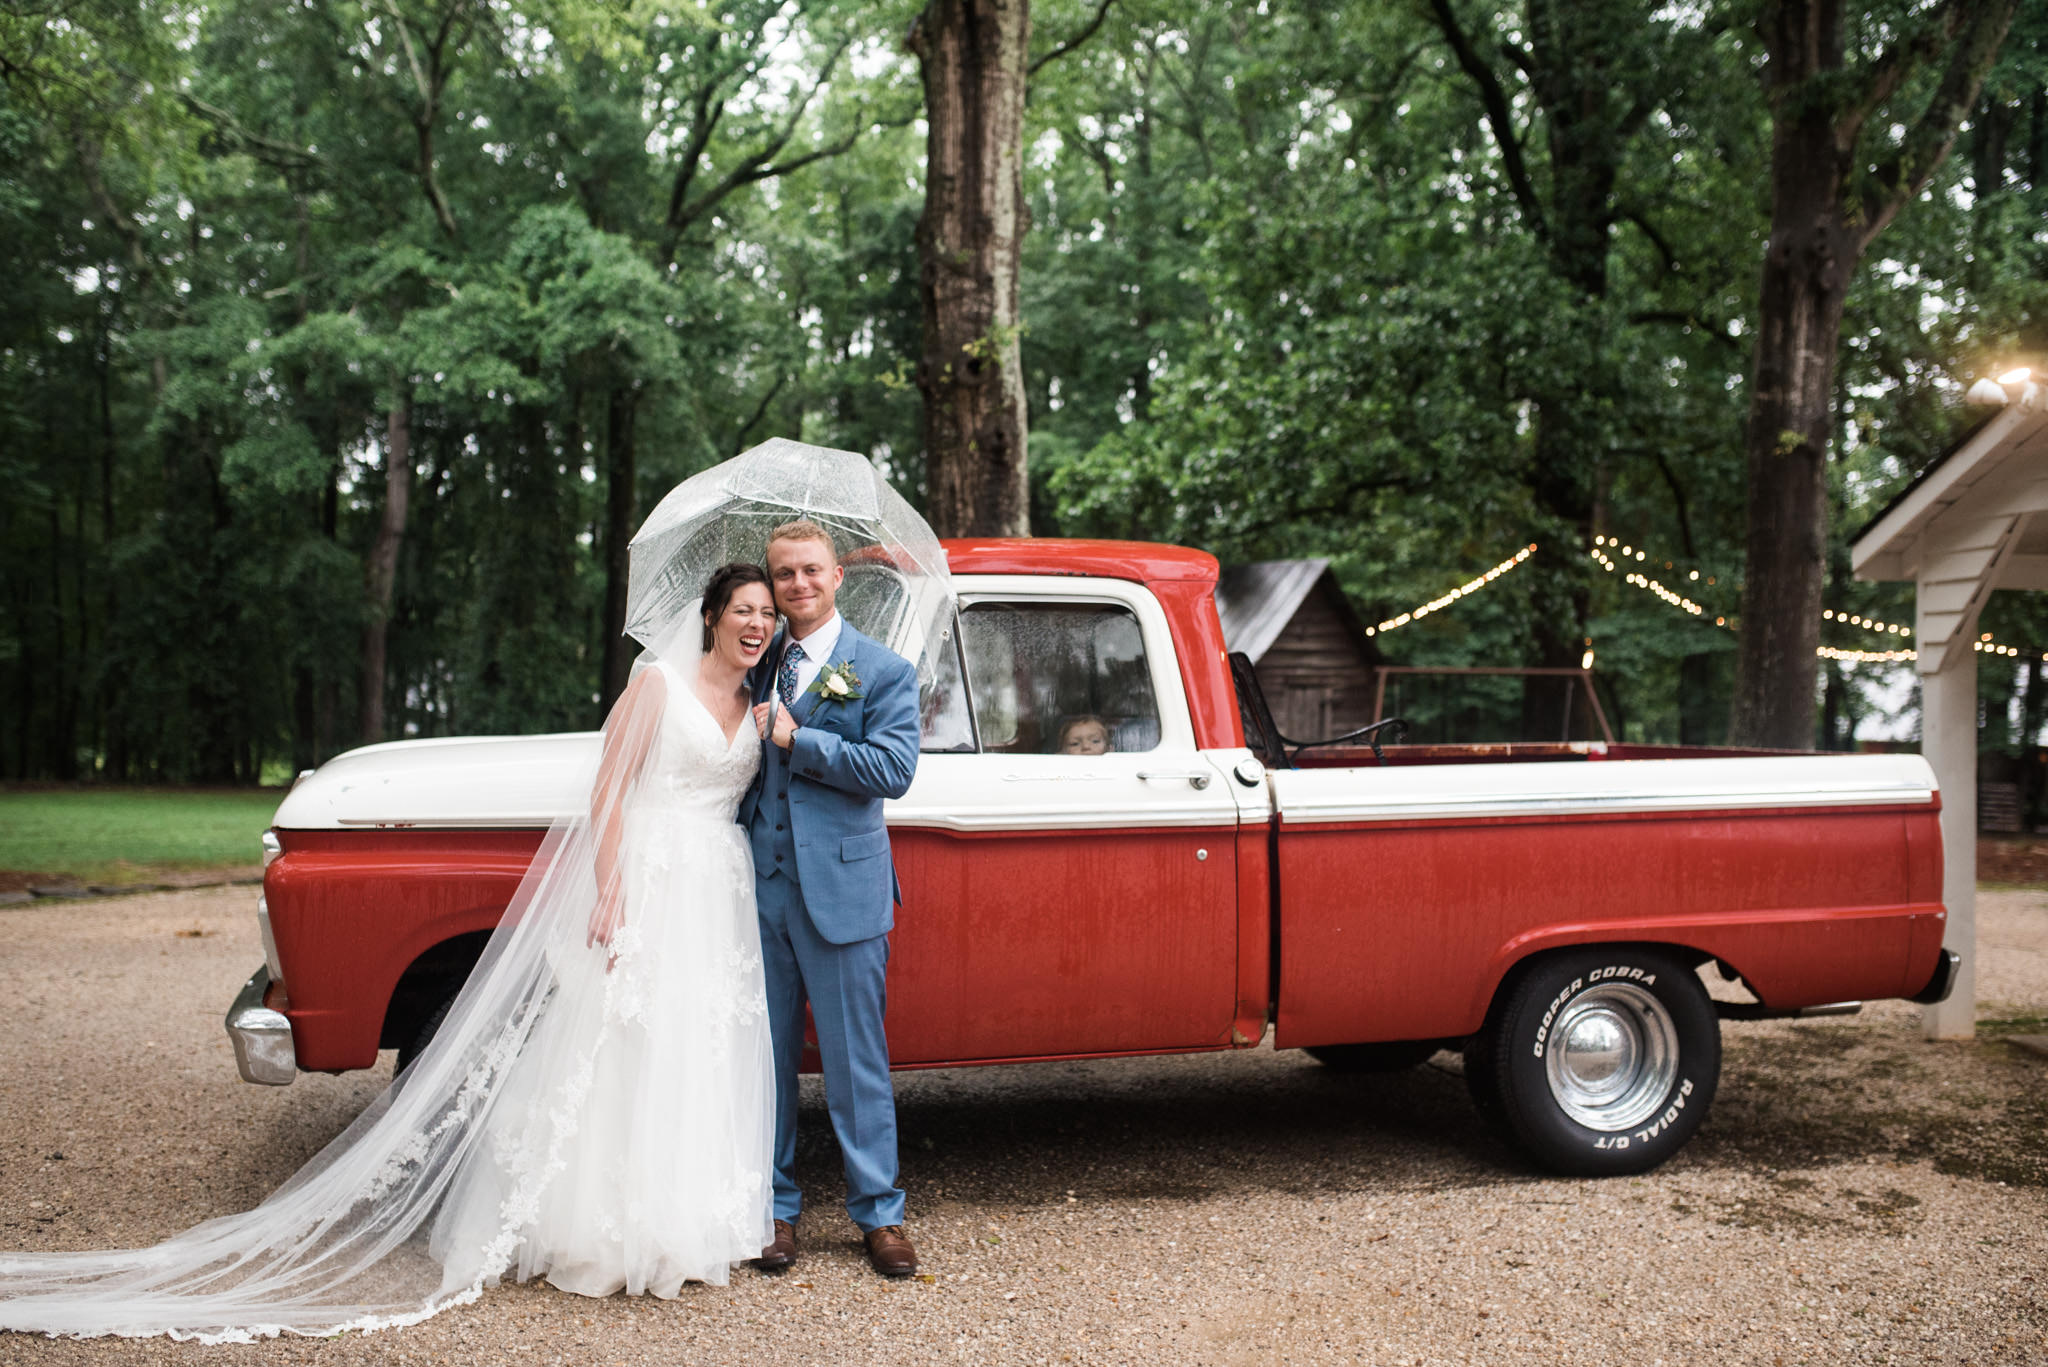 athens-wedding-truck-59.jpg